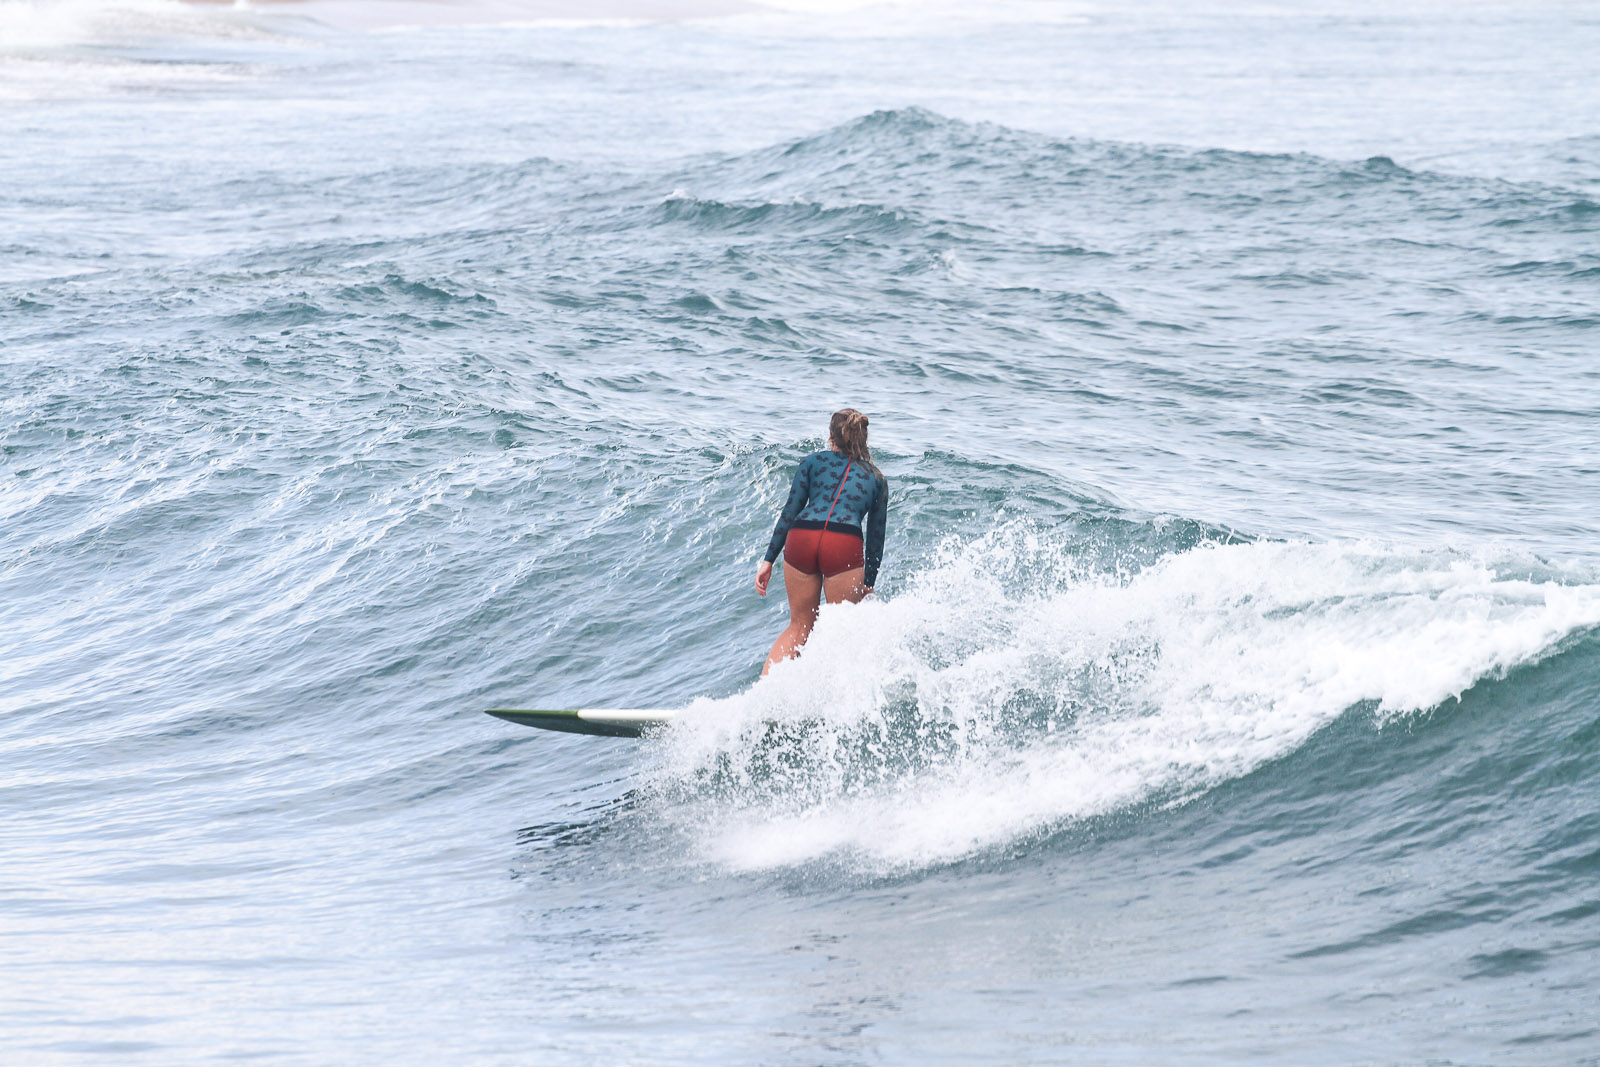 Sunshinestories-surf-travel-blog-IMG_2388